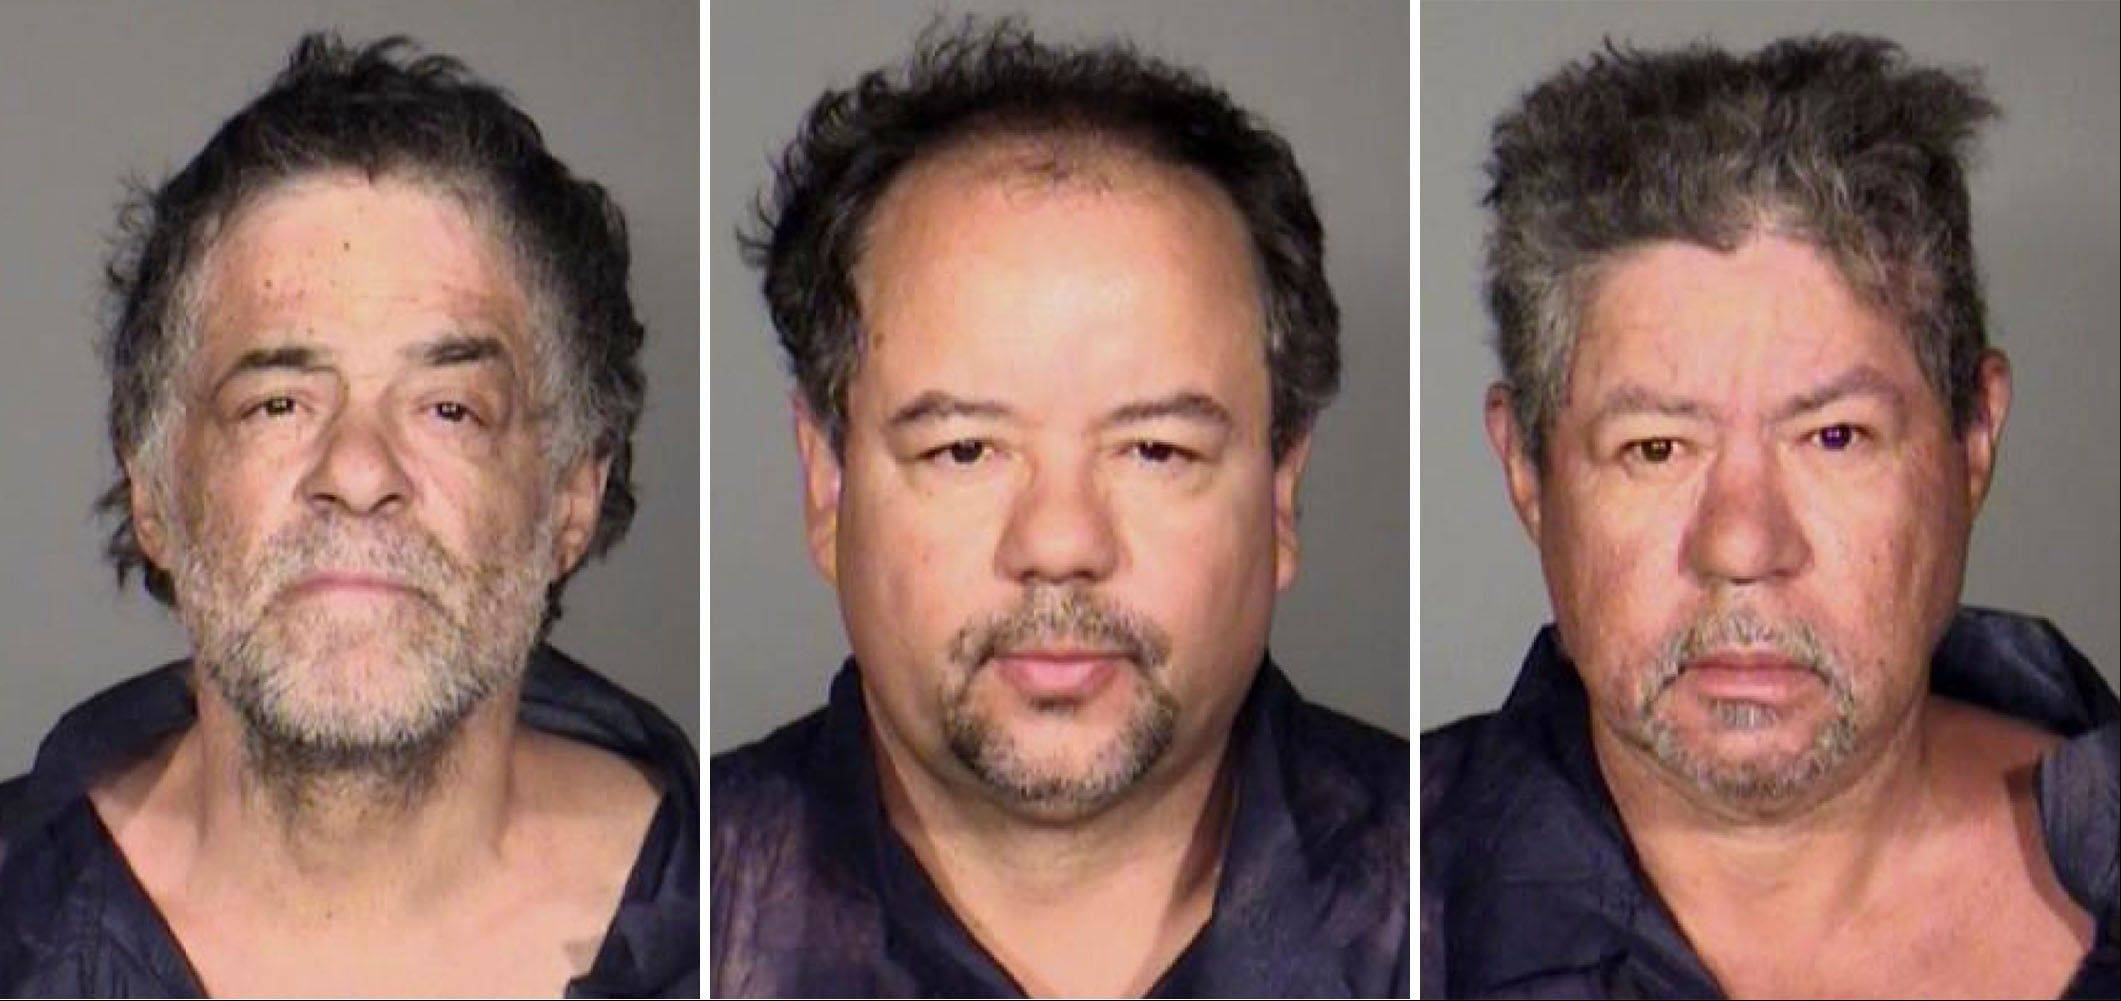 From left, Onil Castro, Ariel Castro, and Pedro Casto. The three brothers were arrested Tuesday, May 7, 2013, after three women who disappeared in Cleveland a decade ago were found safe Monday. The brothers are accused of holding the victims against their will.